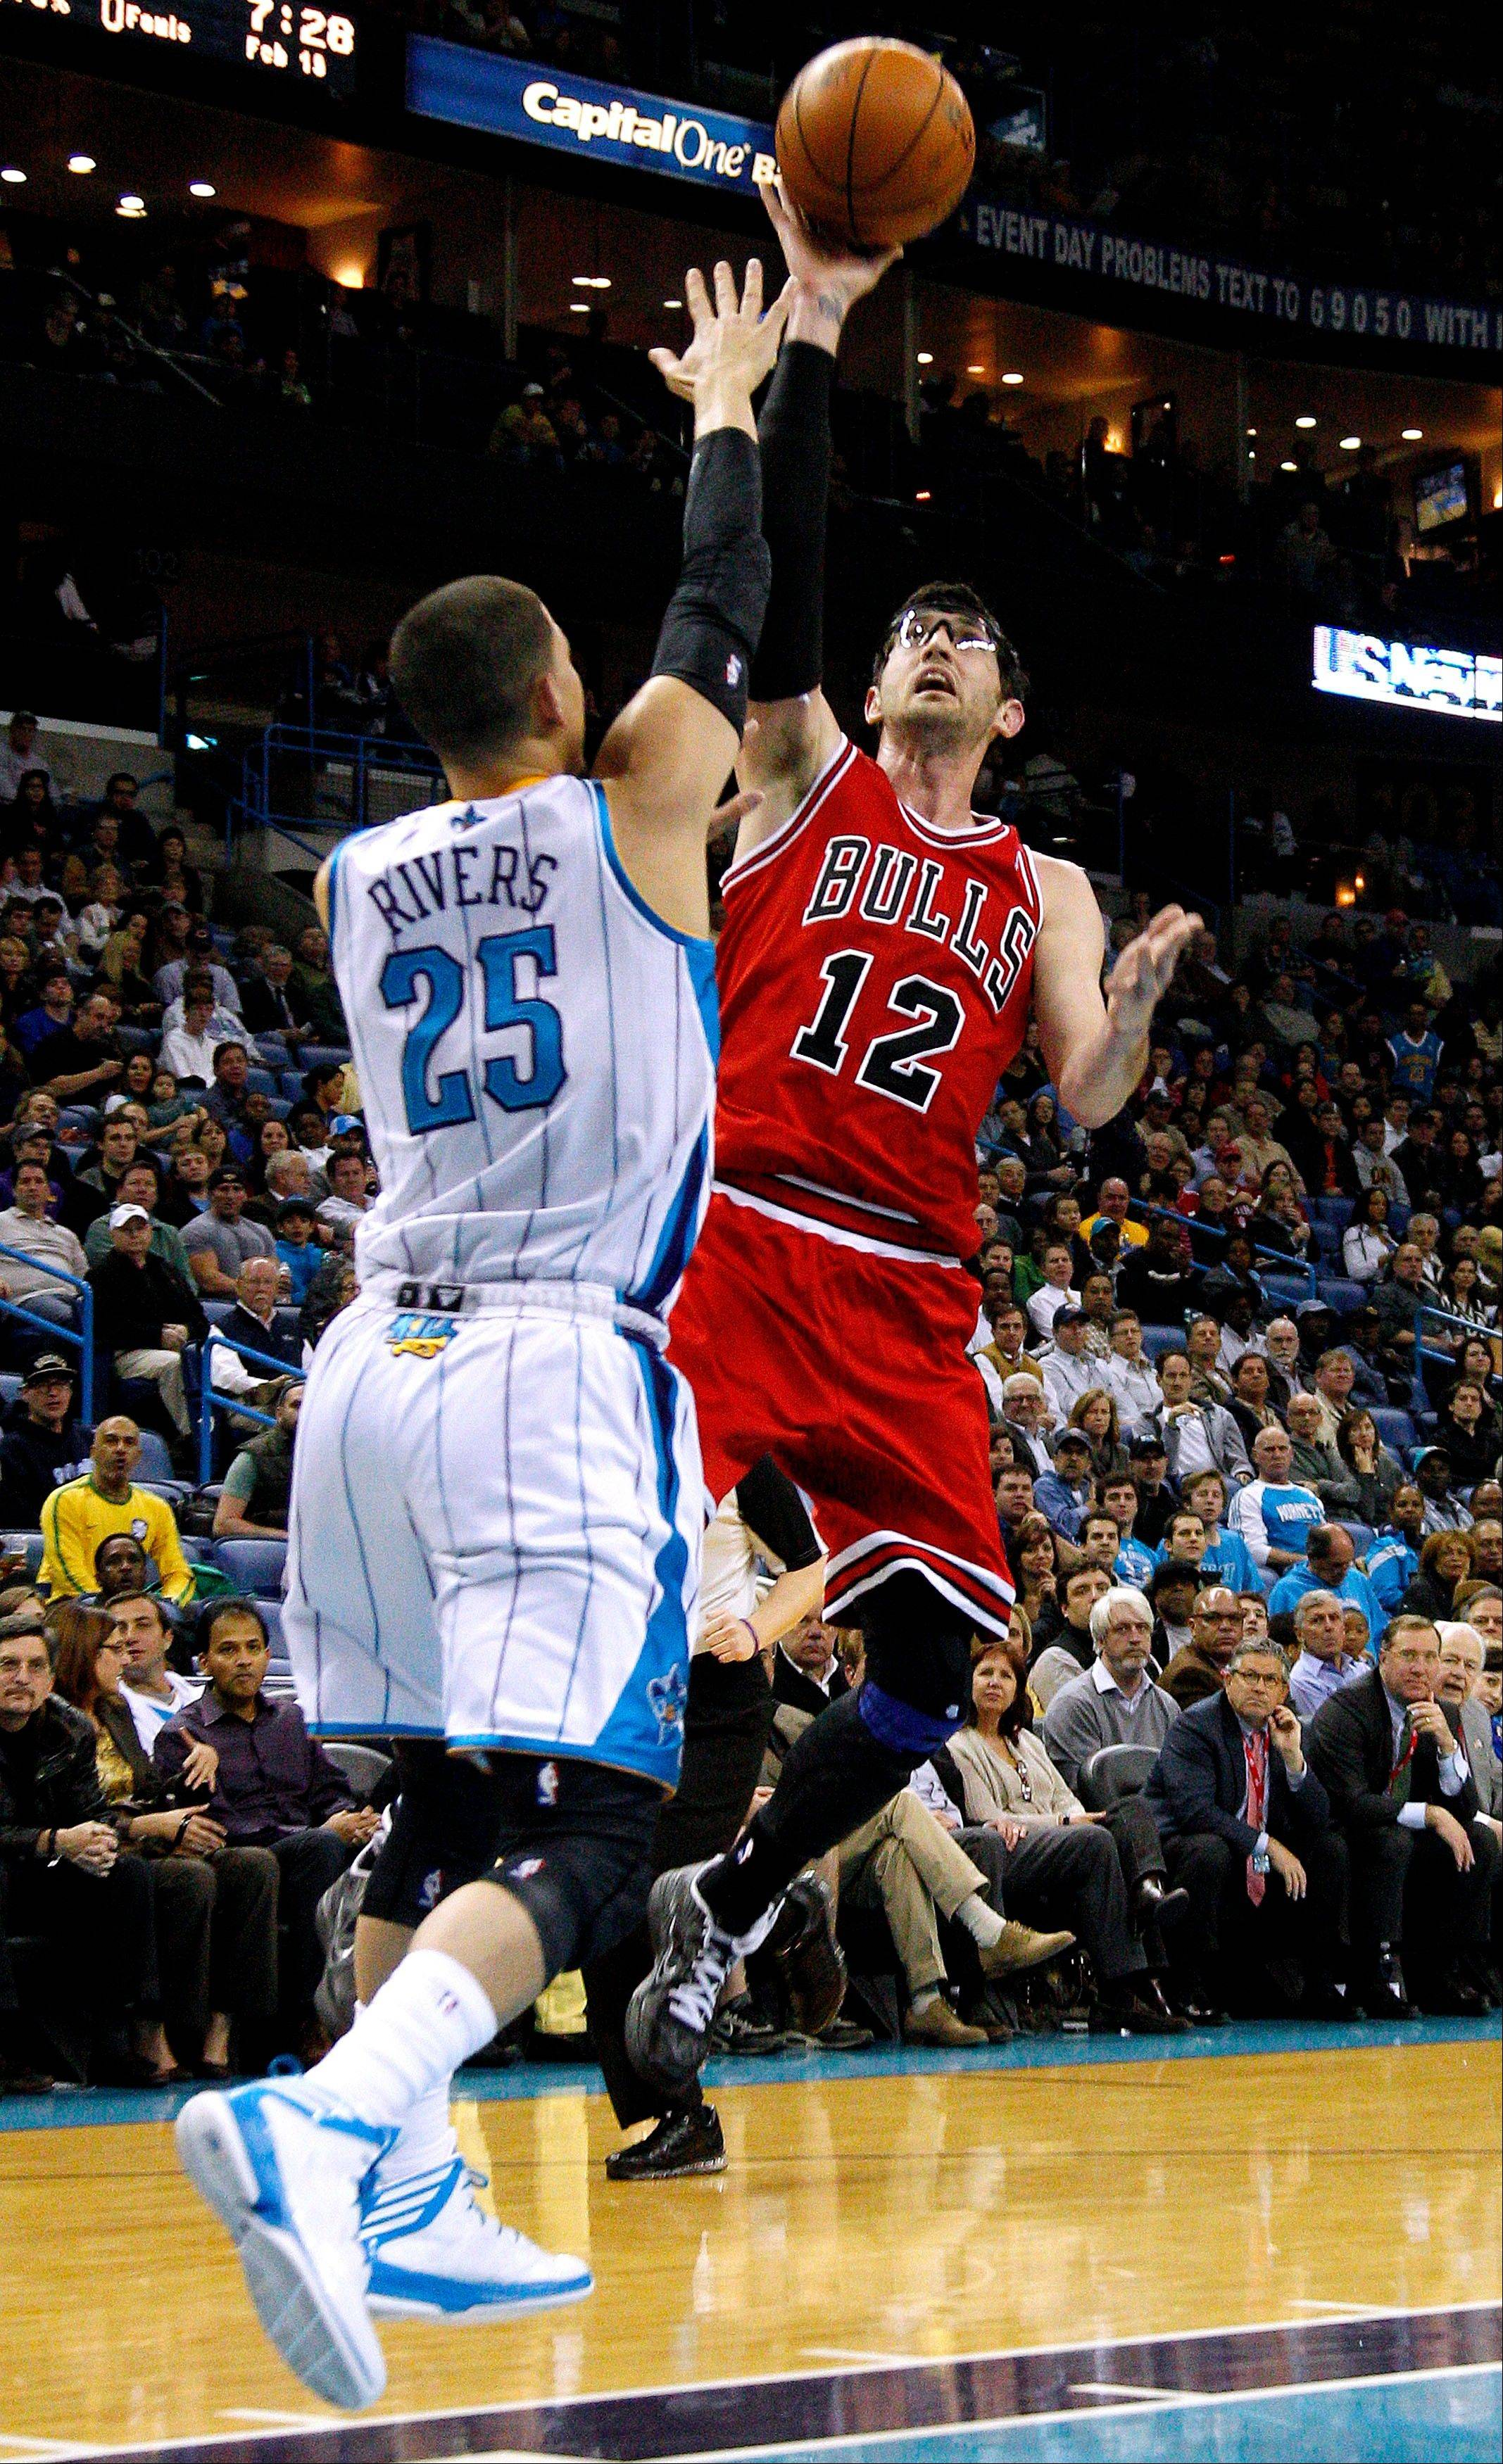 Chicago Bulls guard Kirk Hinrich (12) shoots over New Orleans Hornets guard Austin Rivers (25) during the first half of an NBA basketball game in New Orleans, Tuesday, Feb. 19, 2013. (AP Photo/Jonathan Bachman)